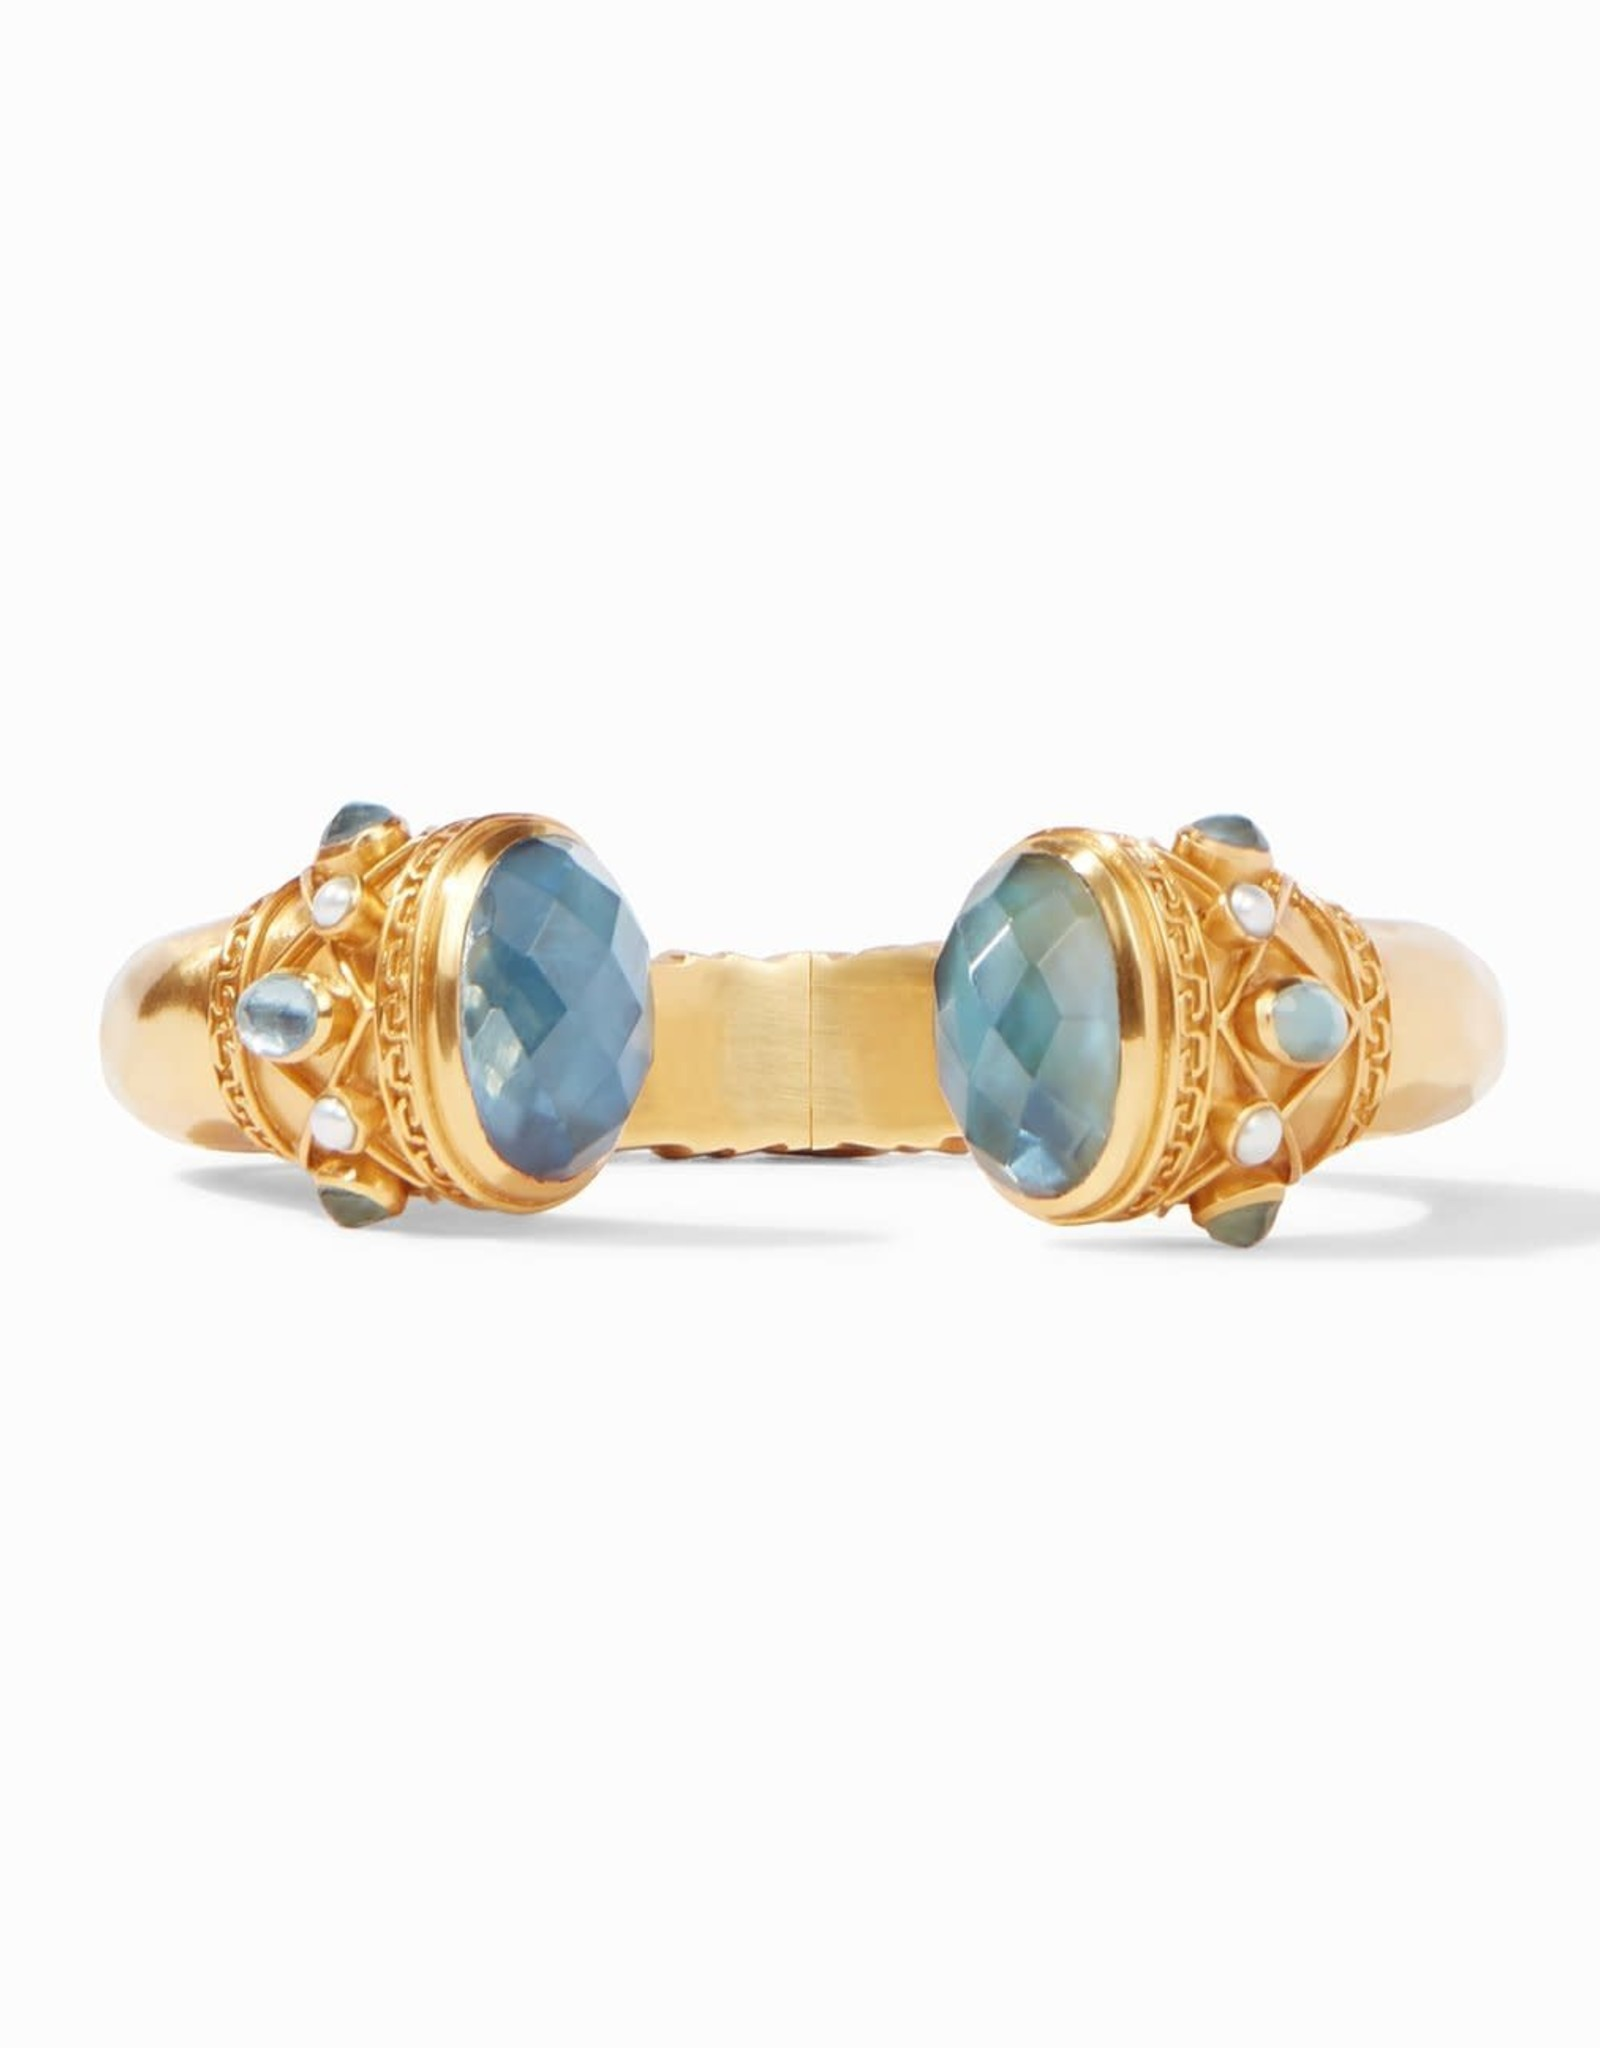 Julie Vos Savannah Hinge Cuff Gold Iridescent Azure Blue with Pearl Accents